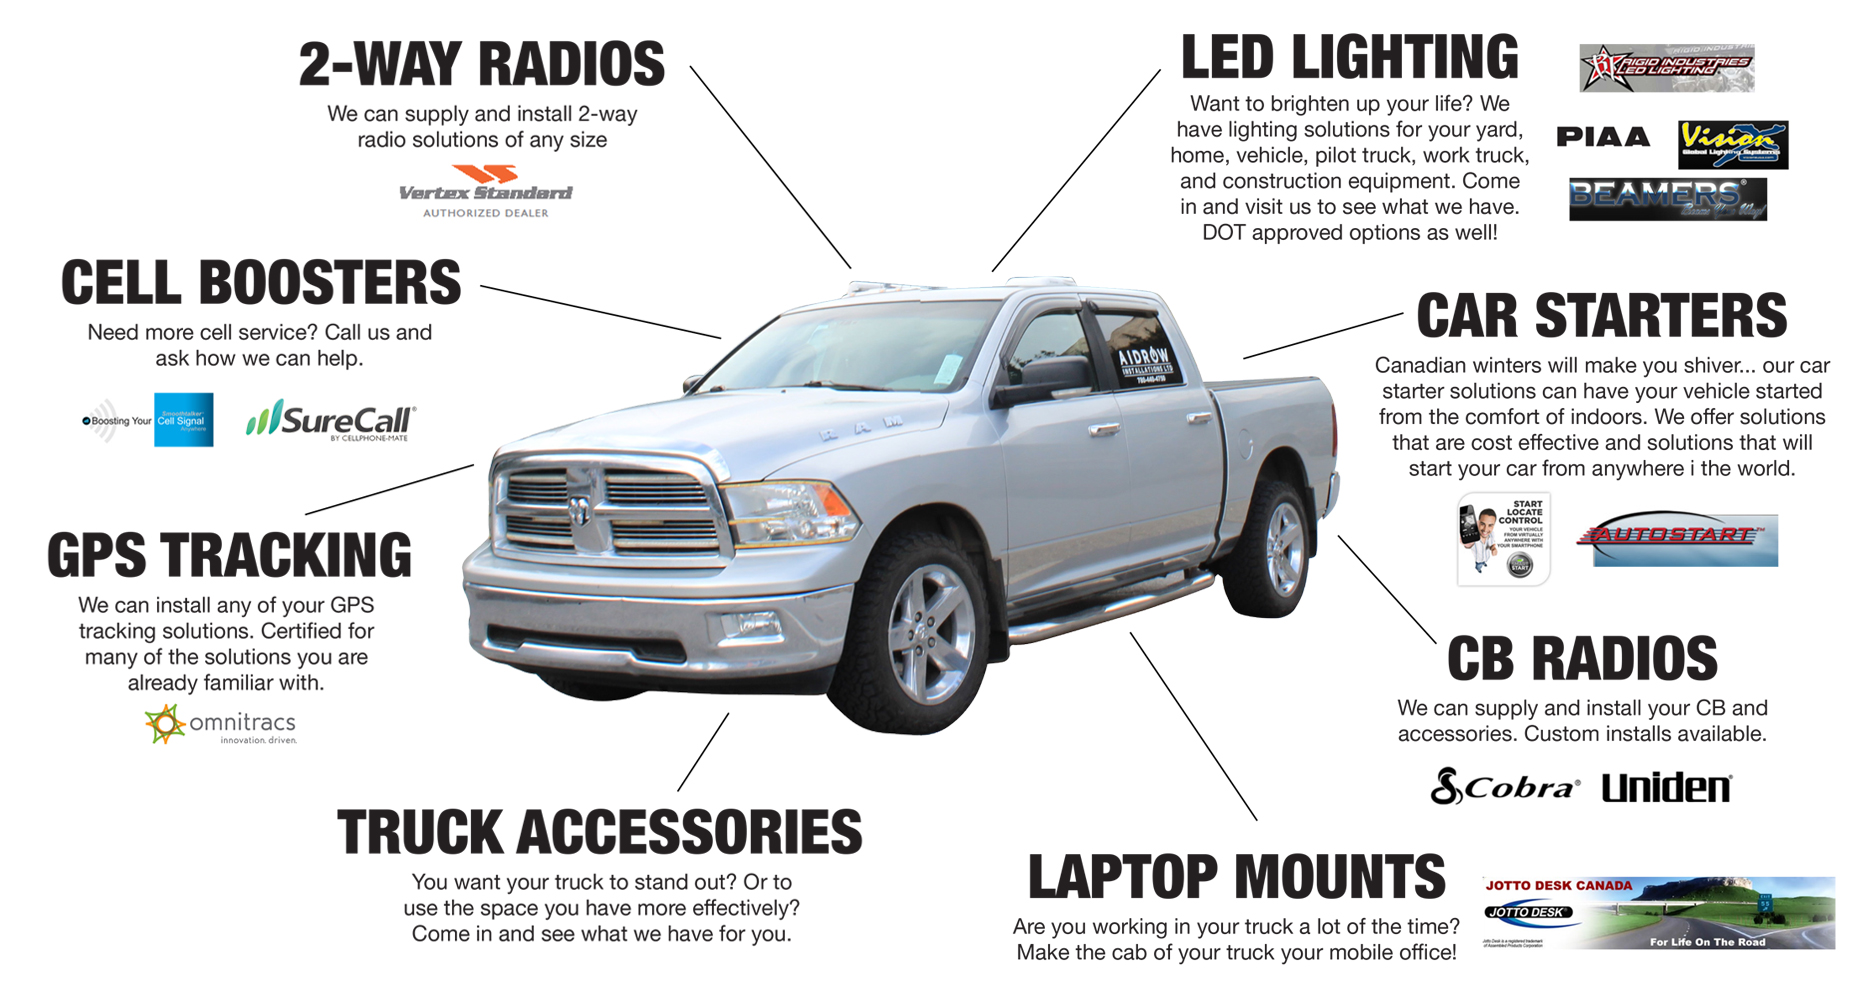 Descriptions of types of products and services Aidrow Installations provides like 2-way radios, cell boosters, car starters, truck accessories, CB radios, LED lighting, and laptop mounts .